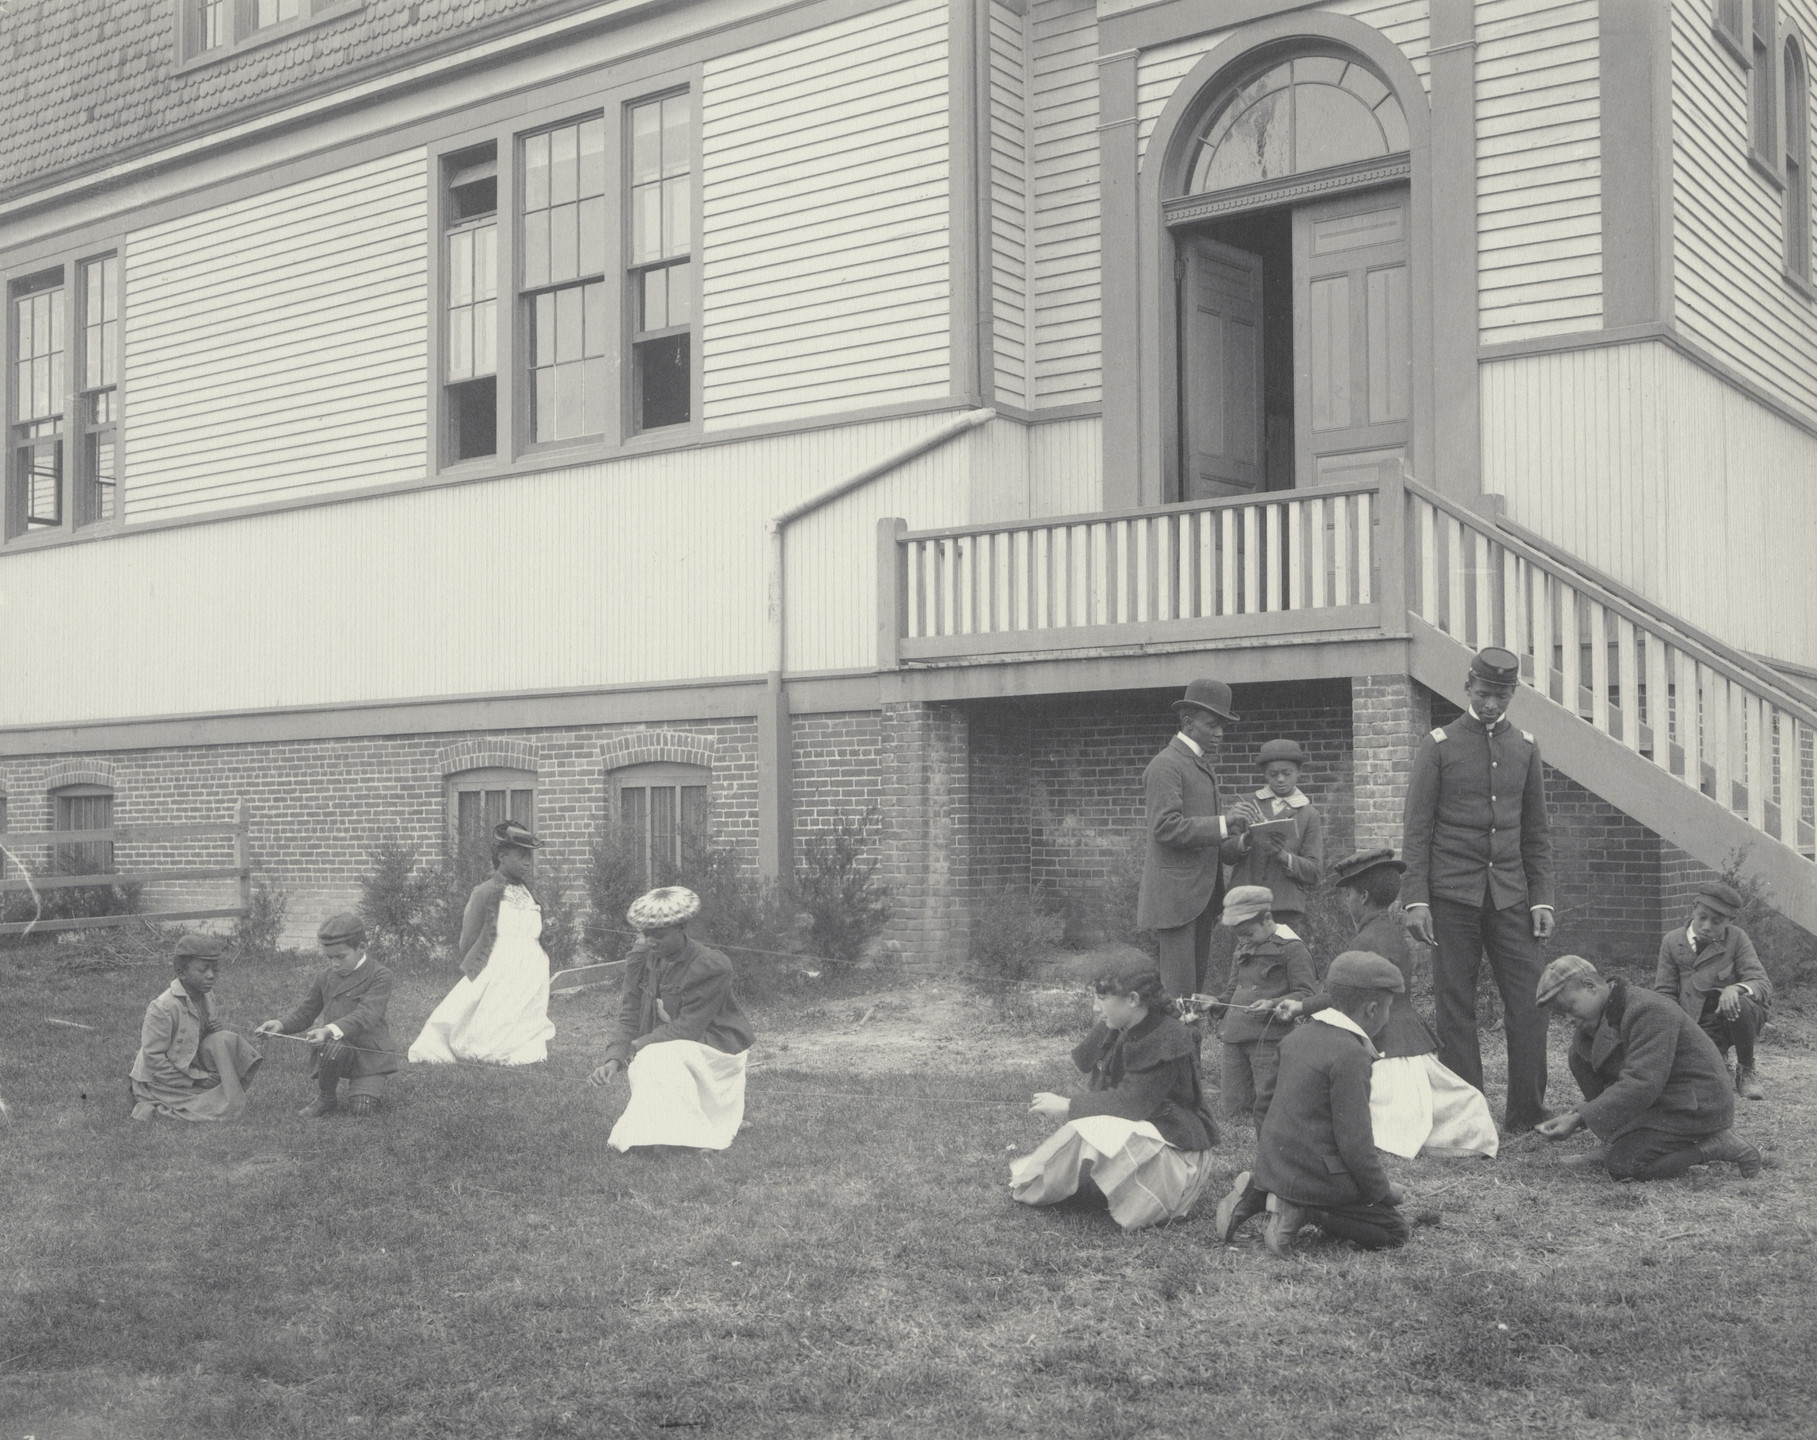 Frances Benjamin Johnston. An arithmetic lesson at the Whittier. 1899-1900